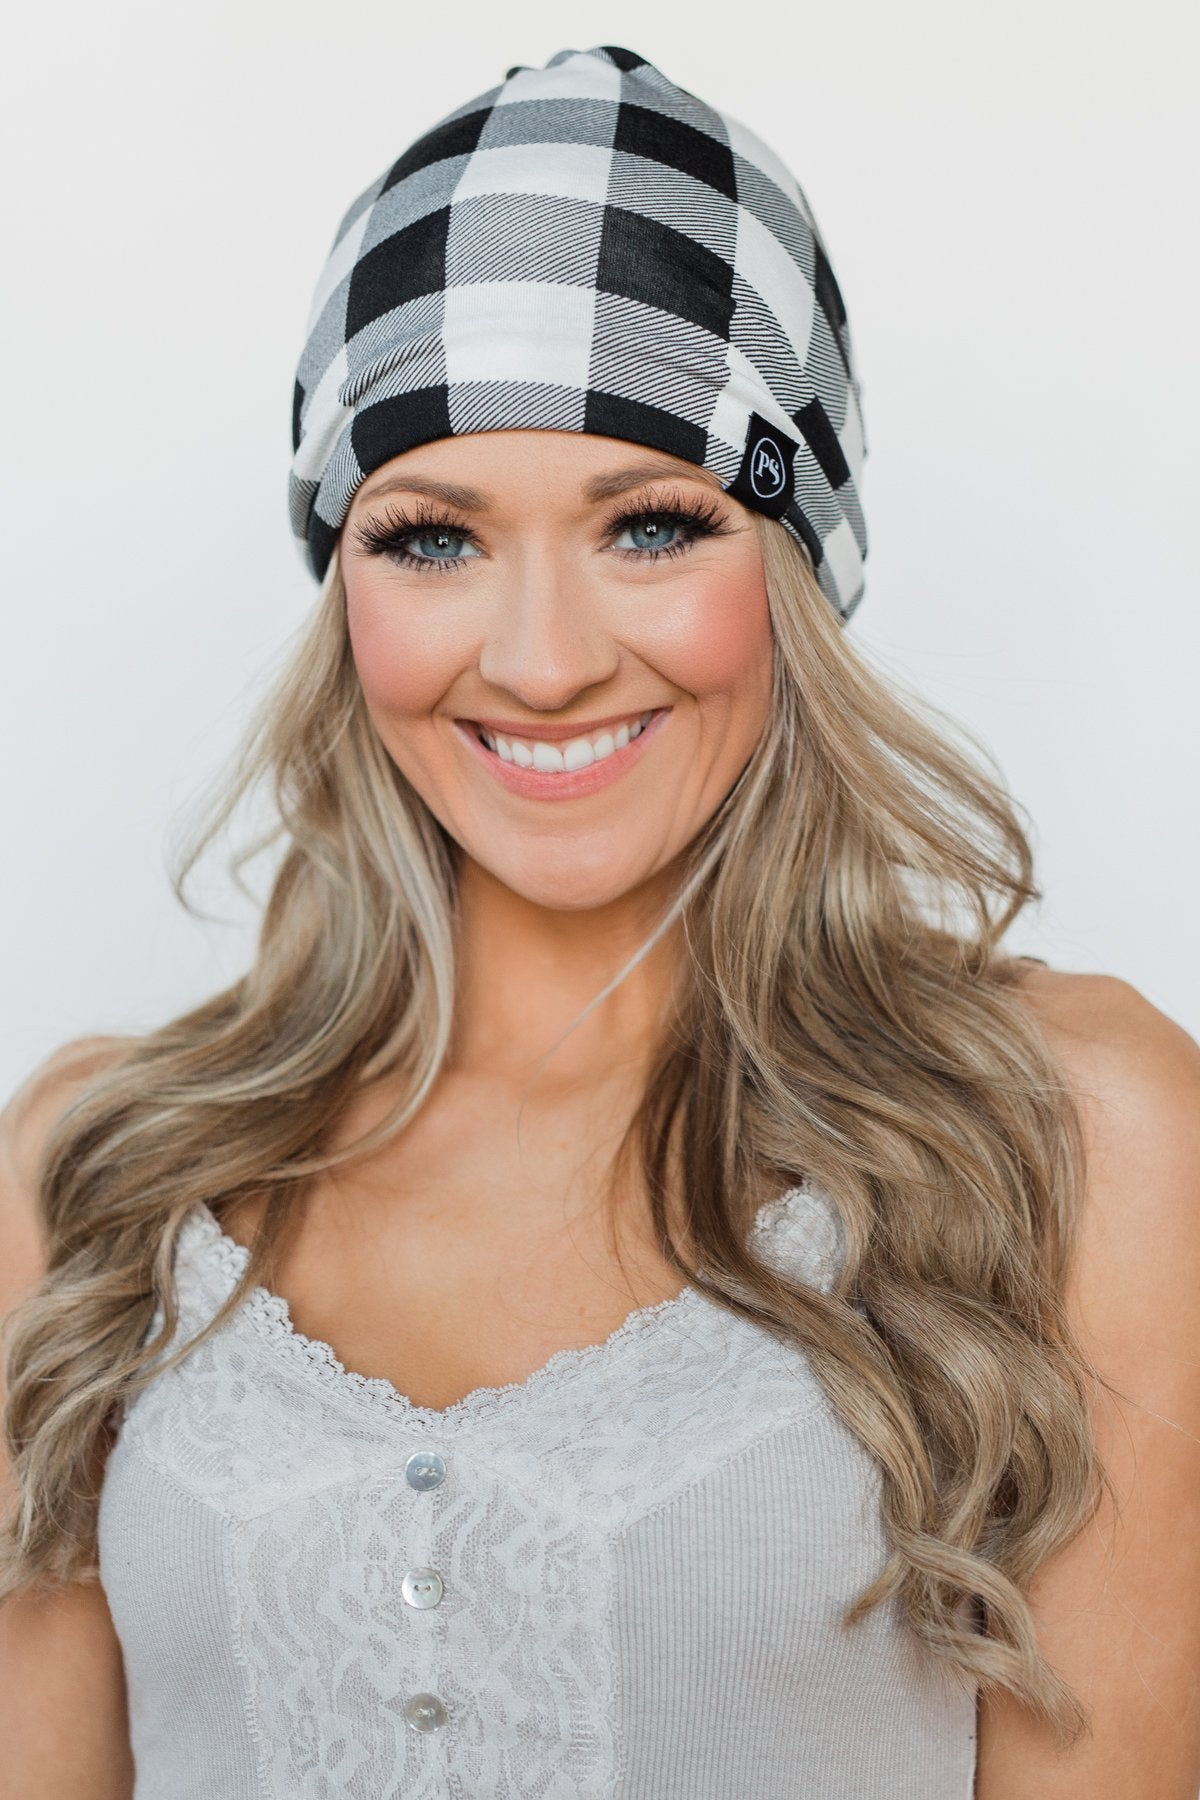 Peek-a-Boo Beanie- Checkered Black & White